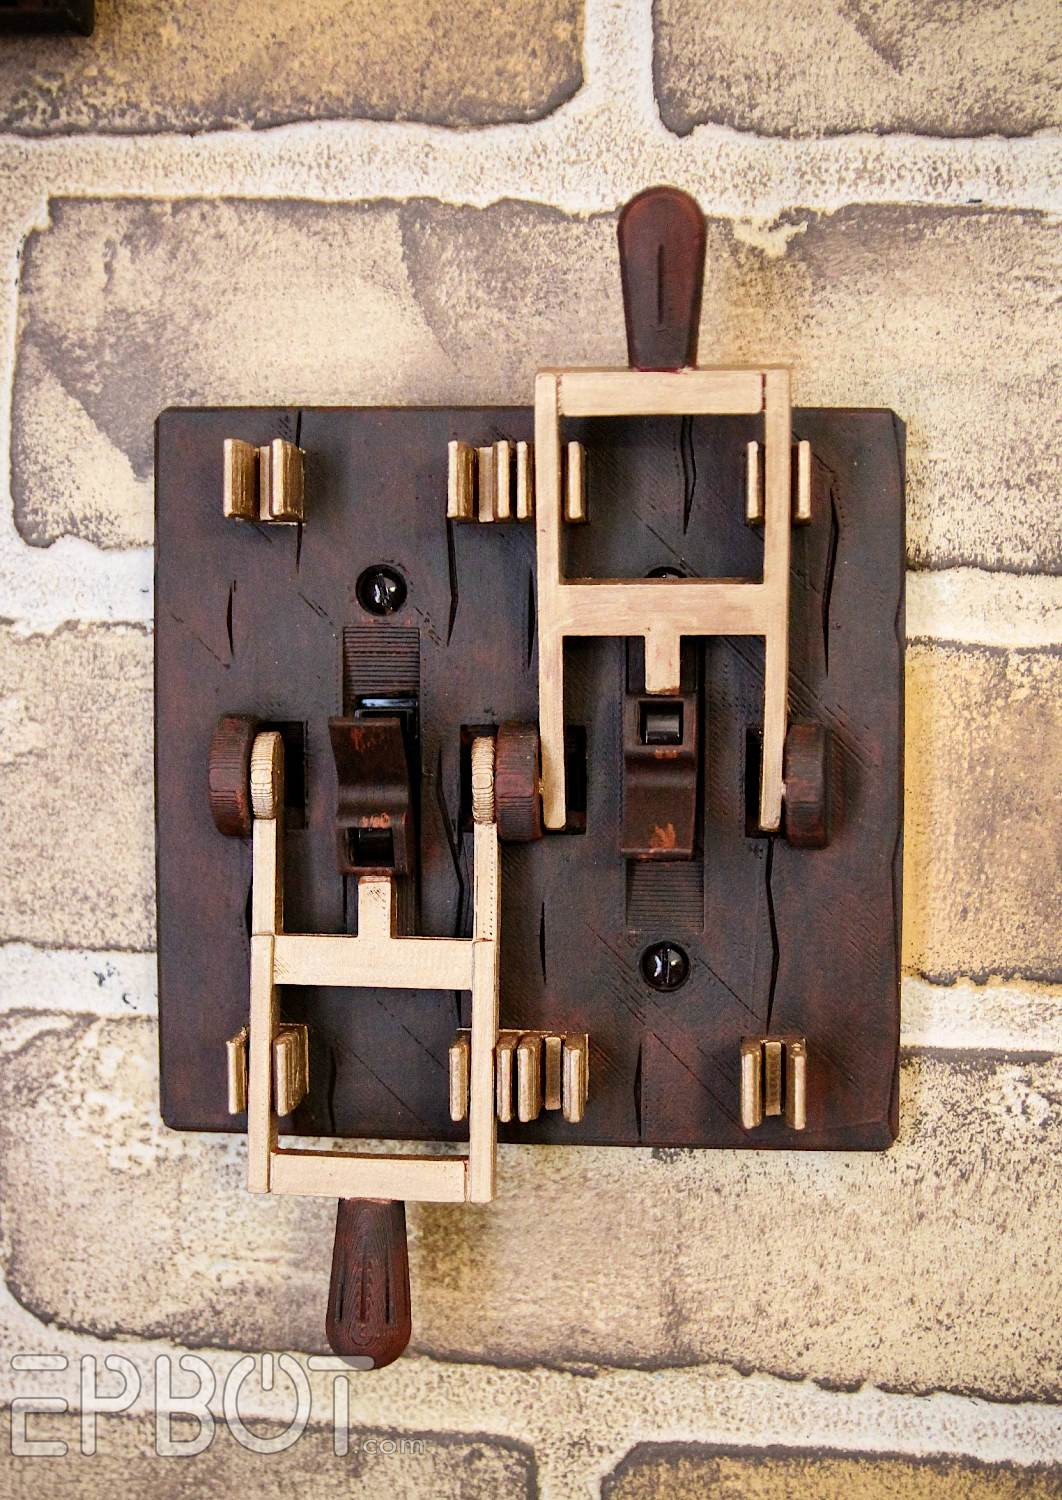 EPBOT The Top 3 Steampunk Switches For Your Inner Mad